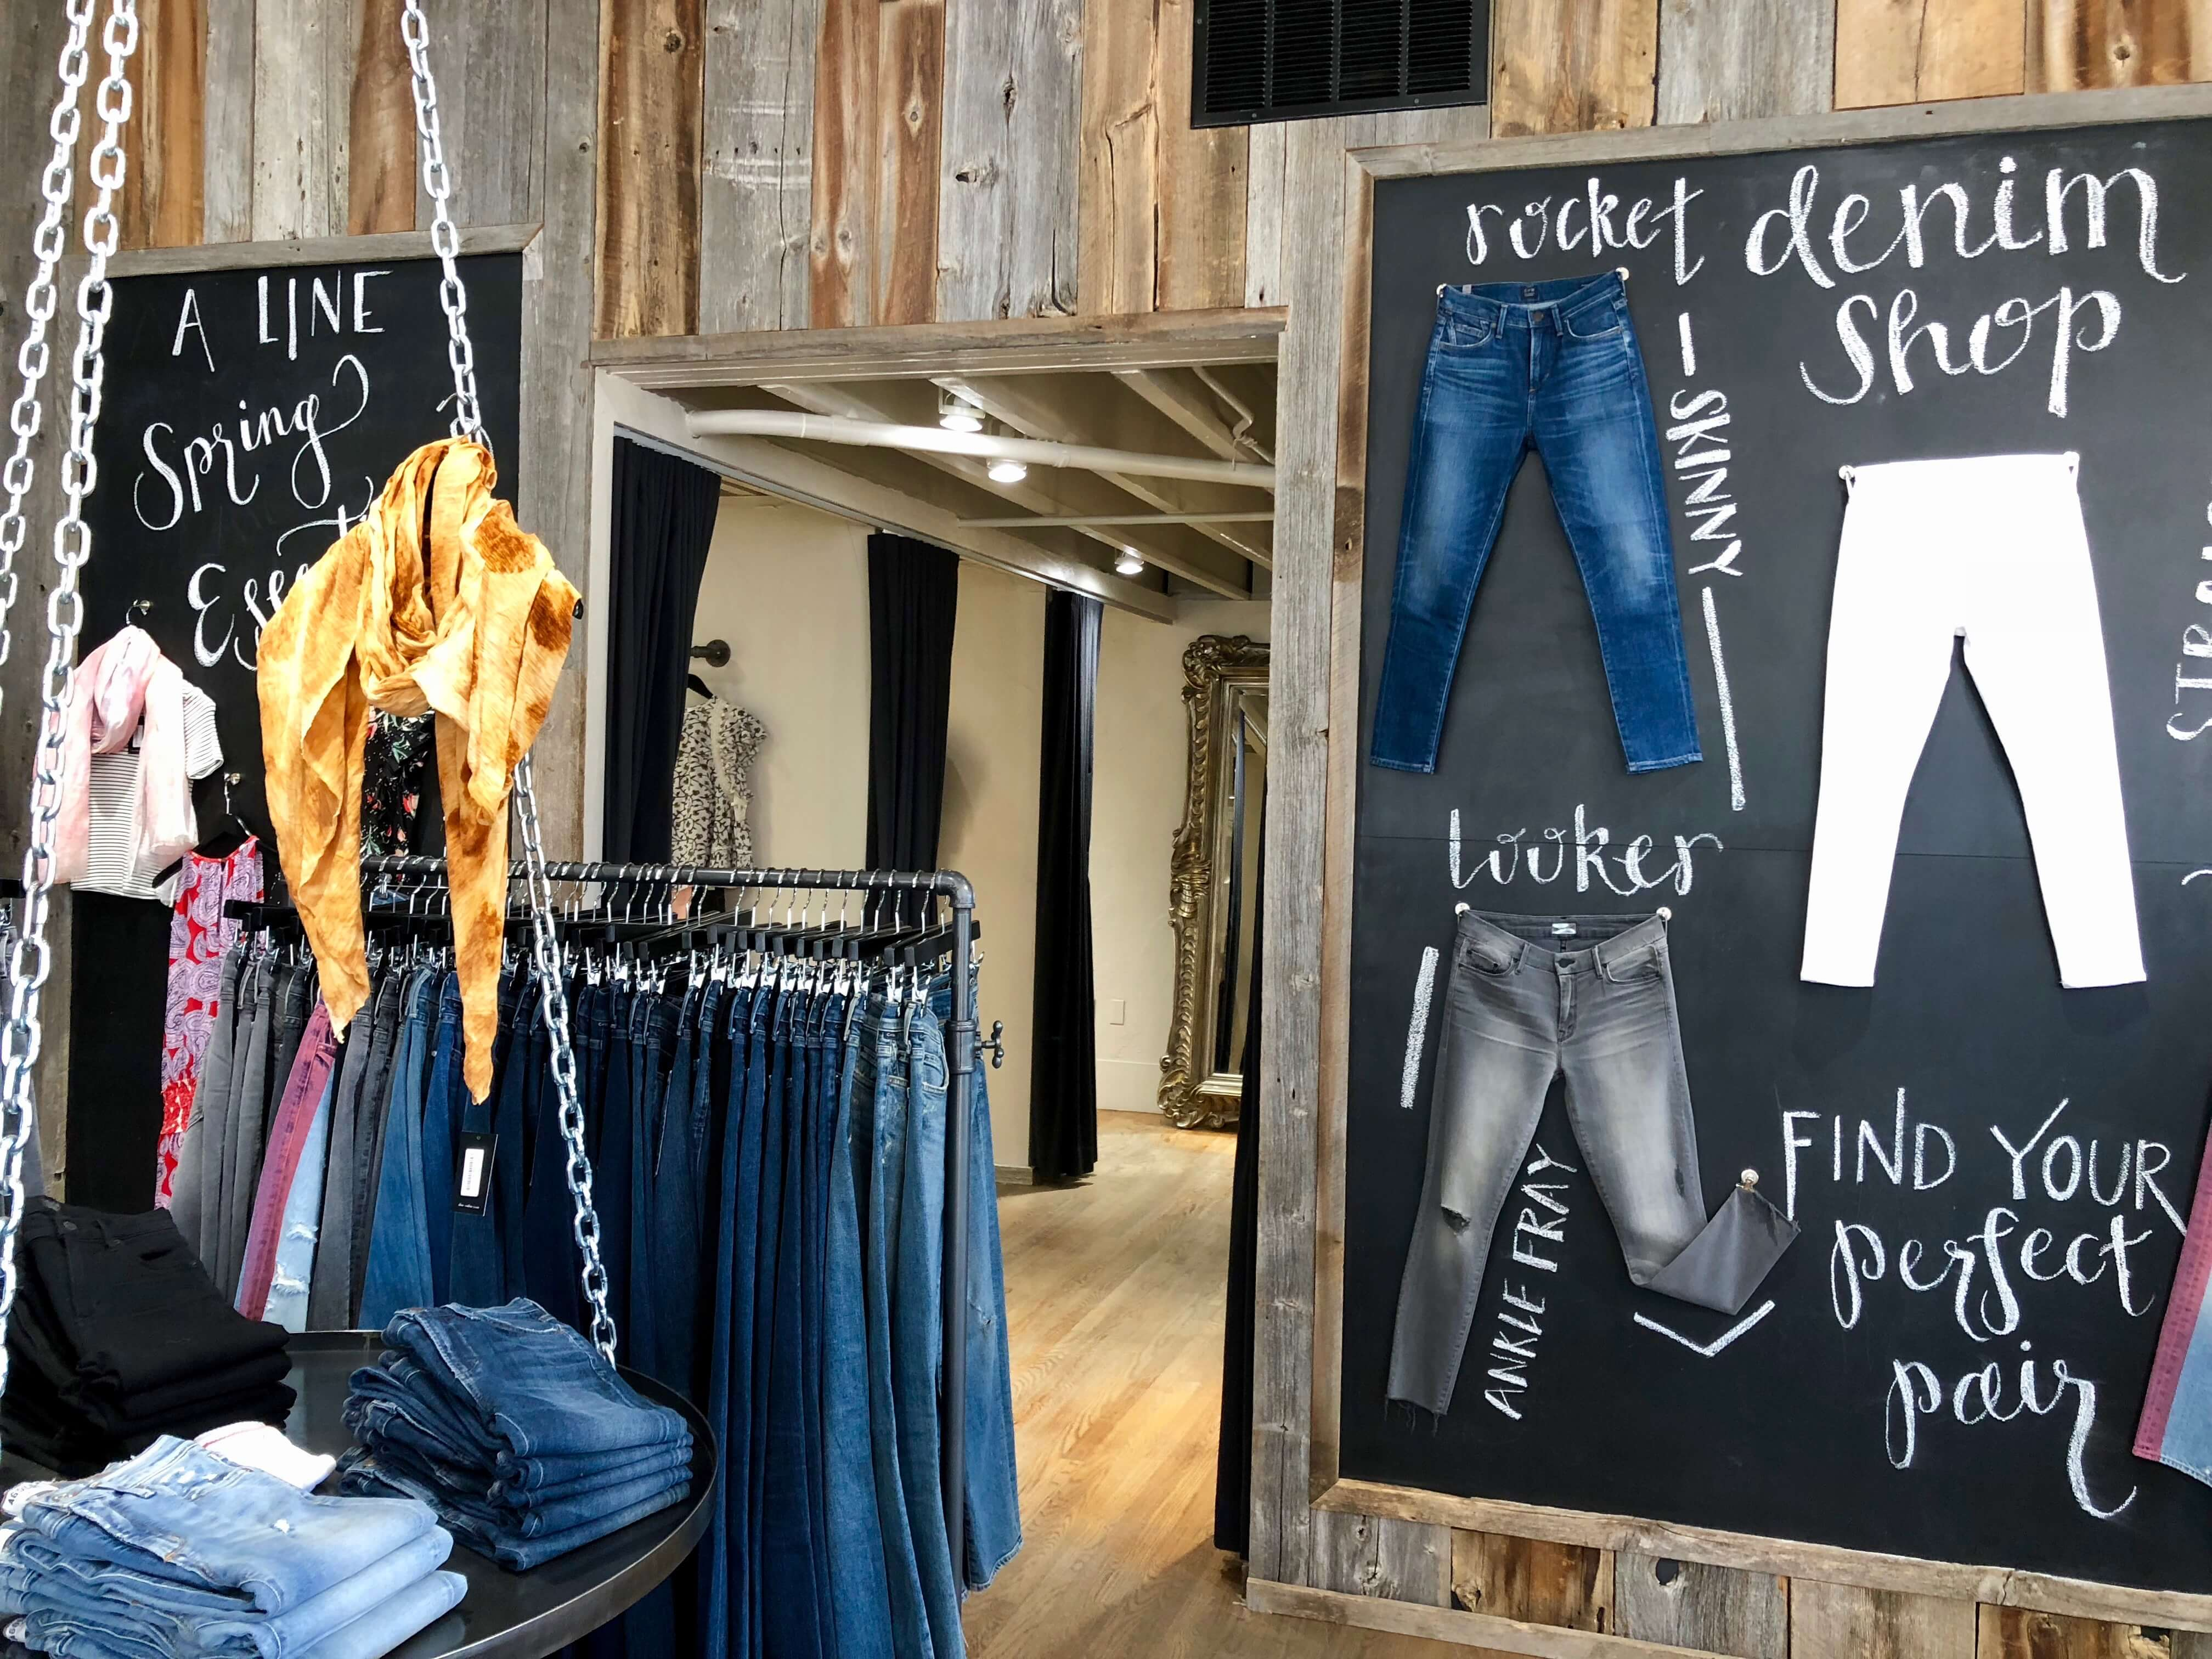 Where to Buy Women's Jeans in Denver: 10 Local Shops You're